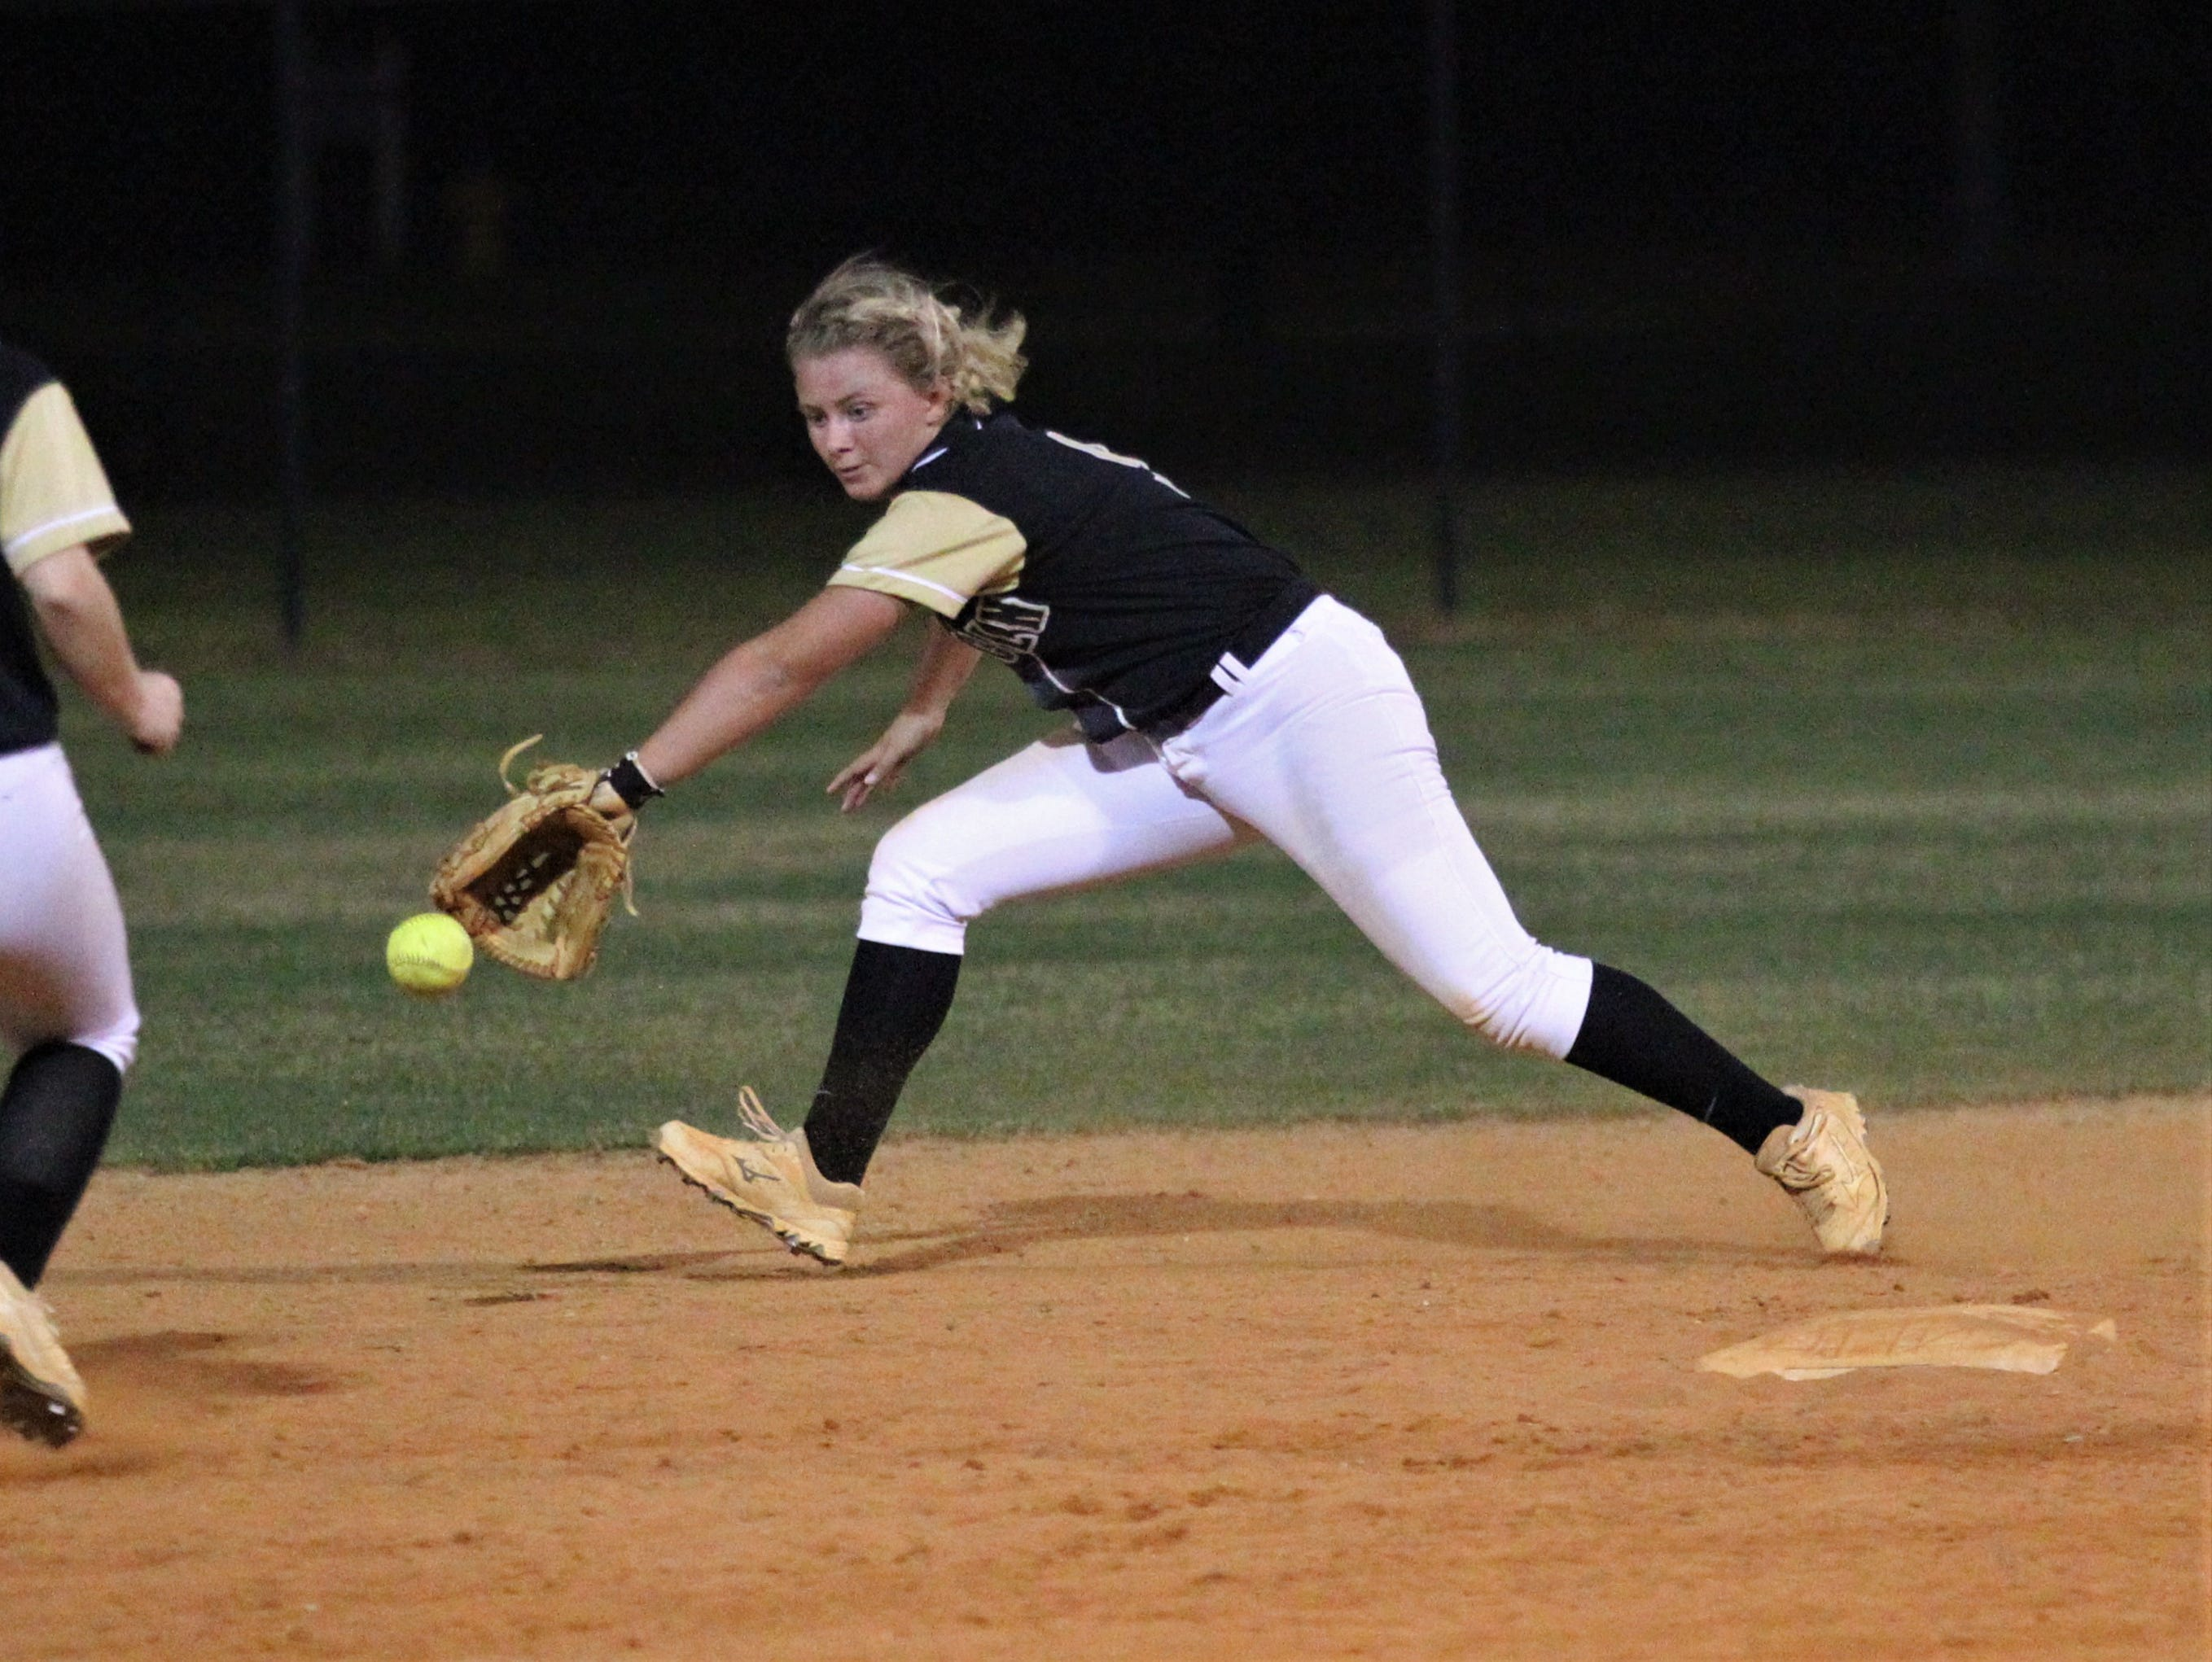 Lincoln second baseman tries to reach a ground ball up the middle as Lincoln's softball team beat Florida High 7-3 on Thursday, April 4, 2019.